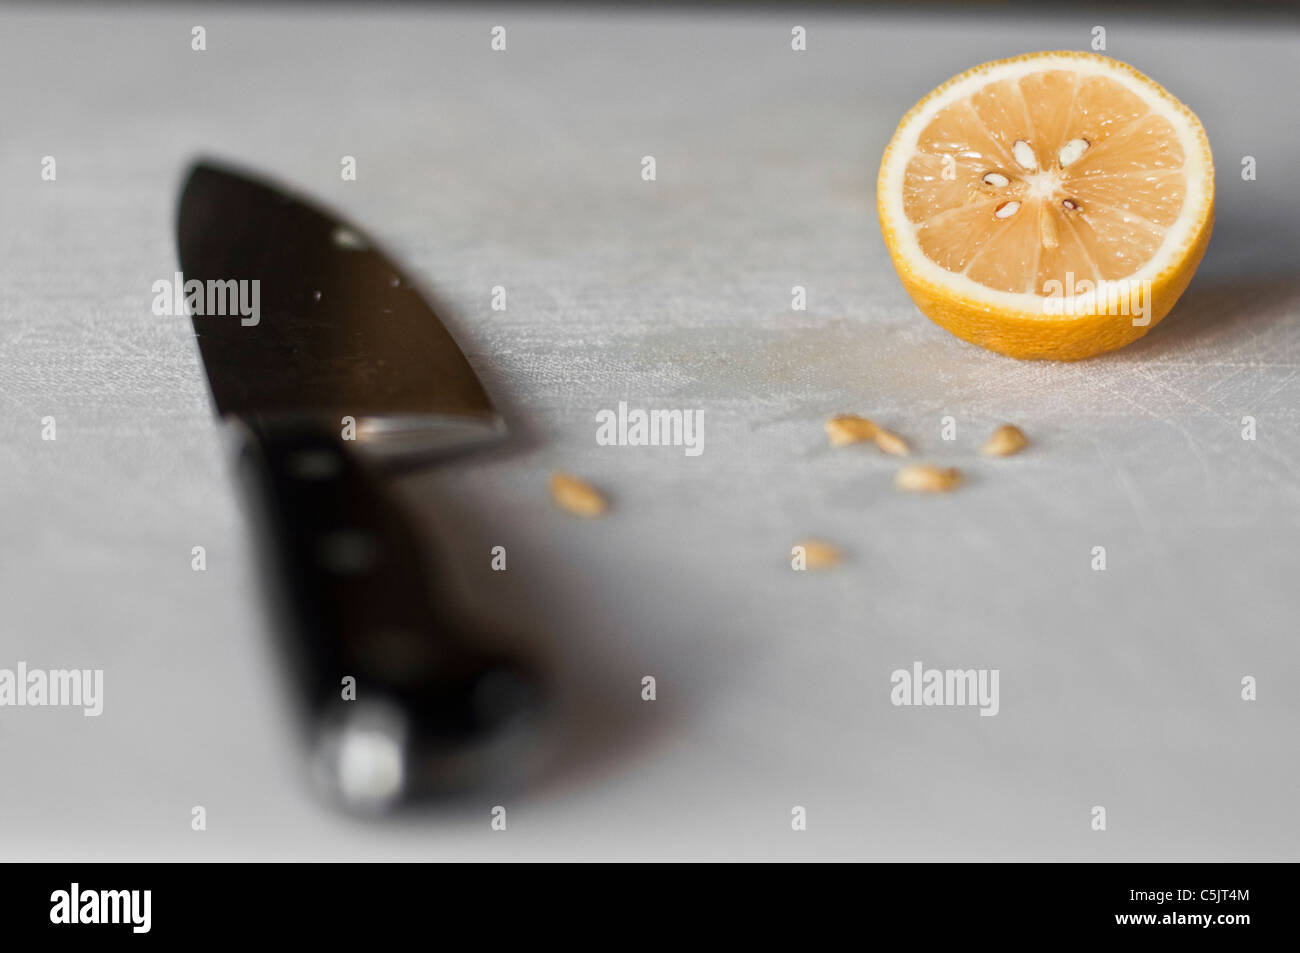 A knife and lemon half on a white cutting board. - Stock Image